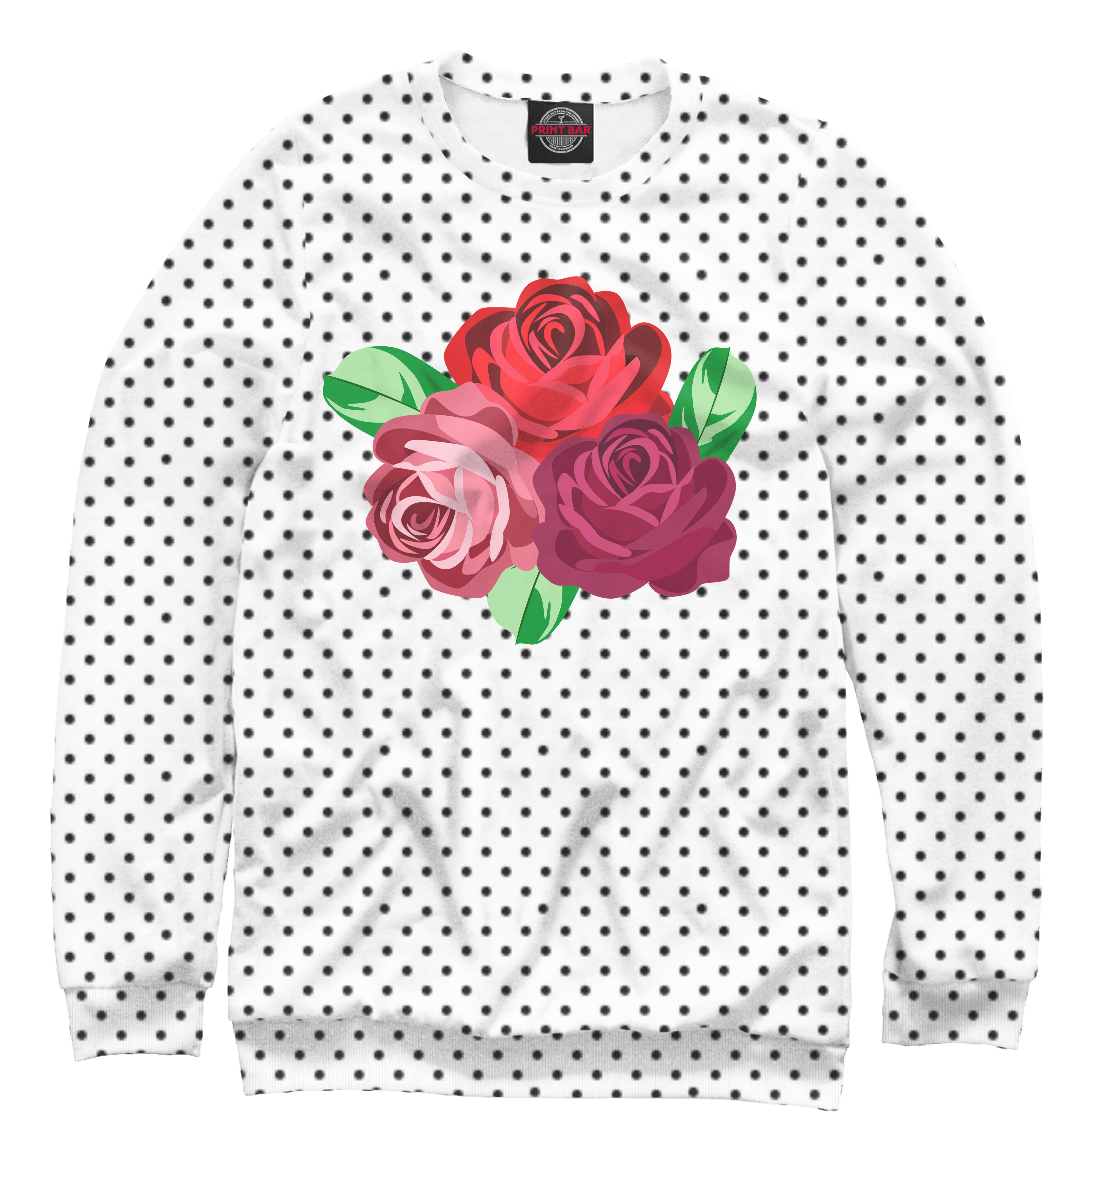 Roses and dot